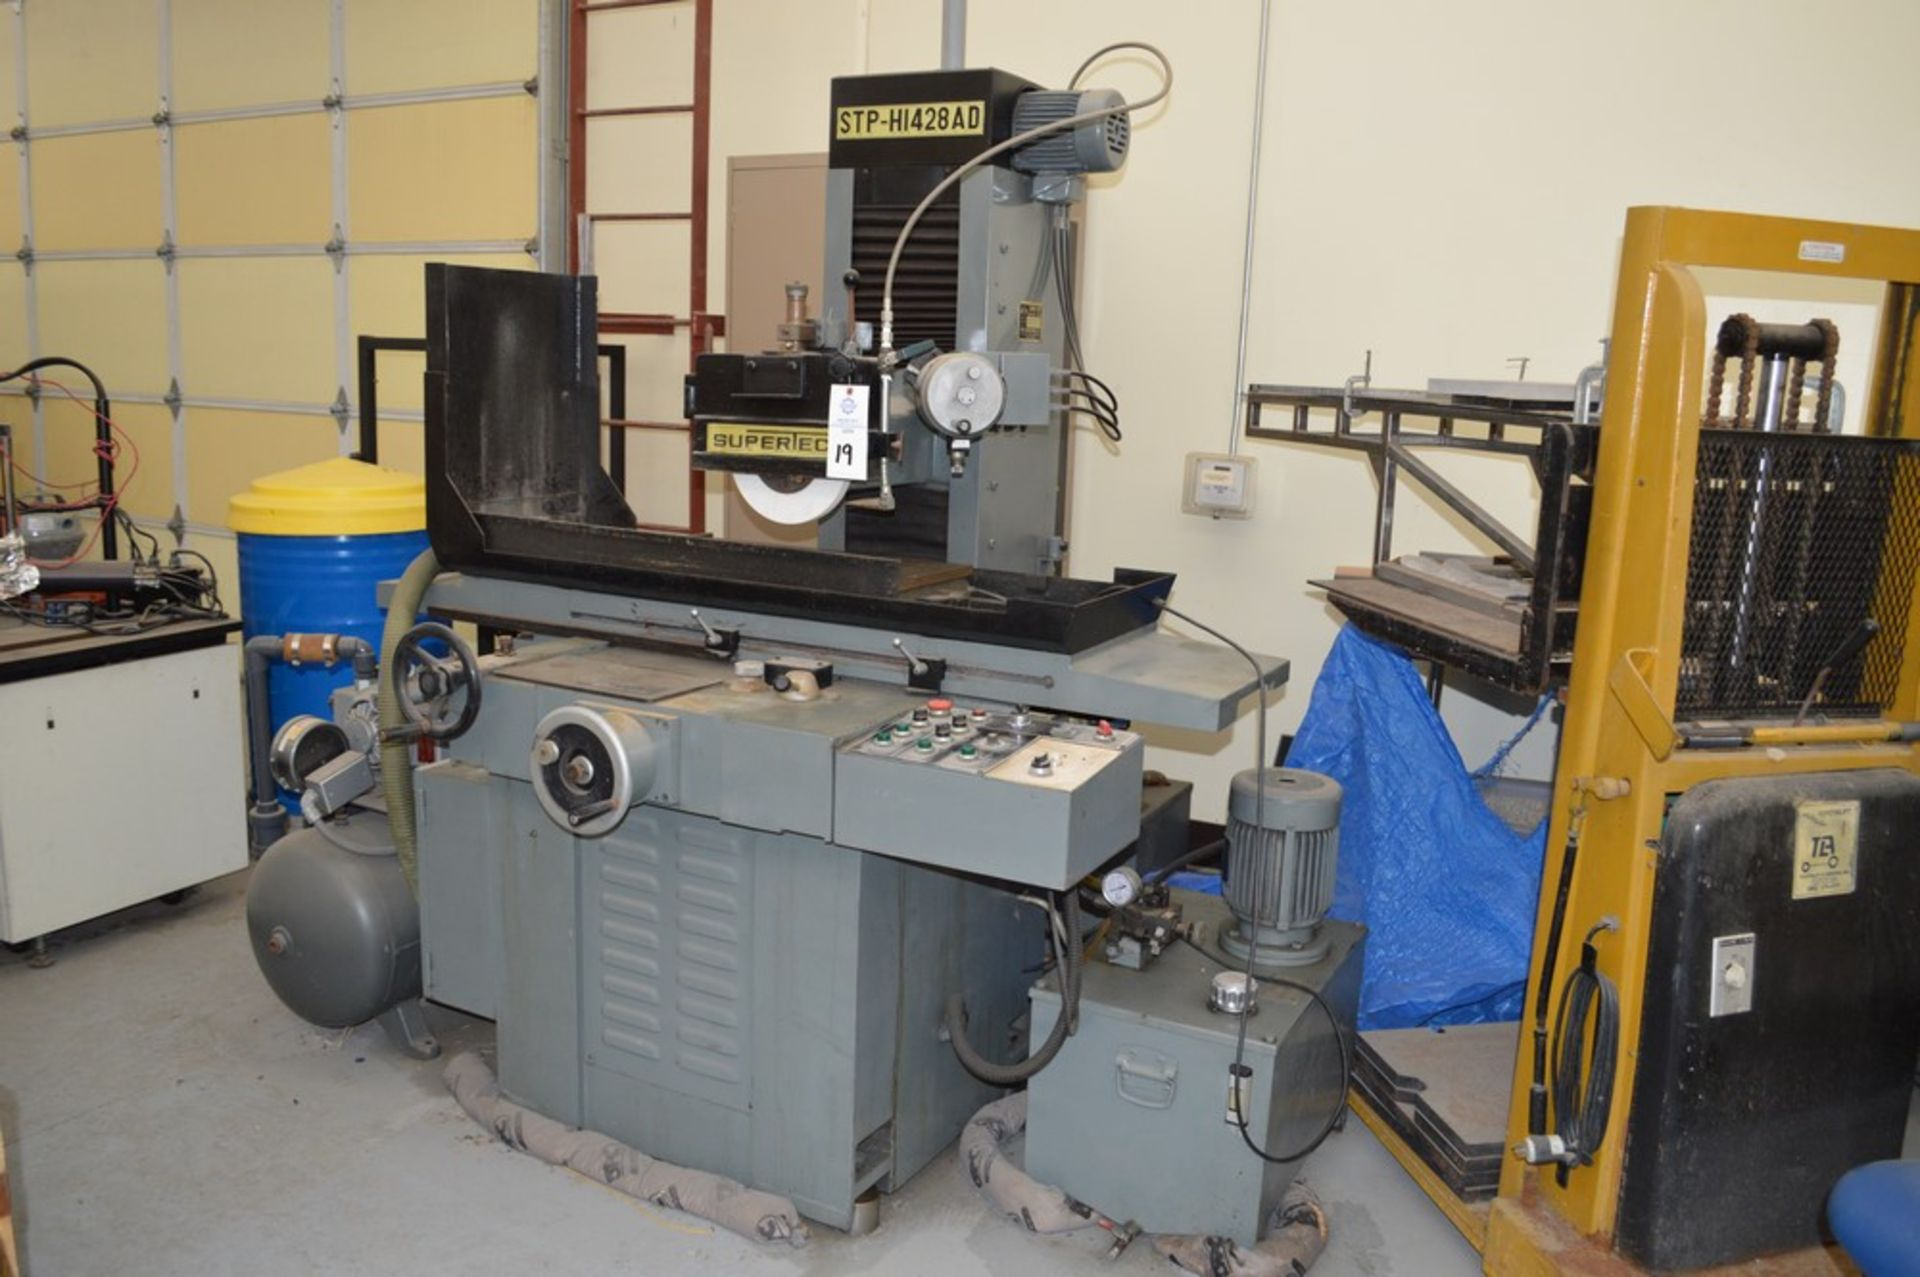 Supertec, STP-H1428 AD Grinder, Full three axis hydraulics, 12 x 27 magnetic chuck - Image 7 of 9